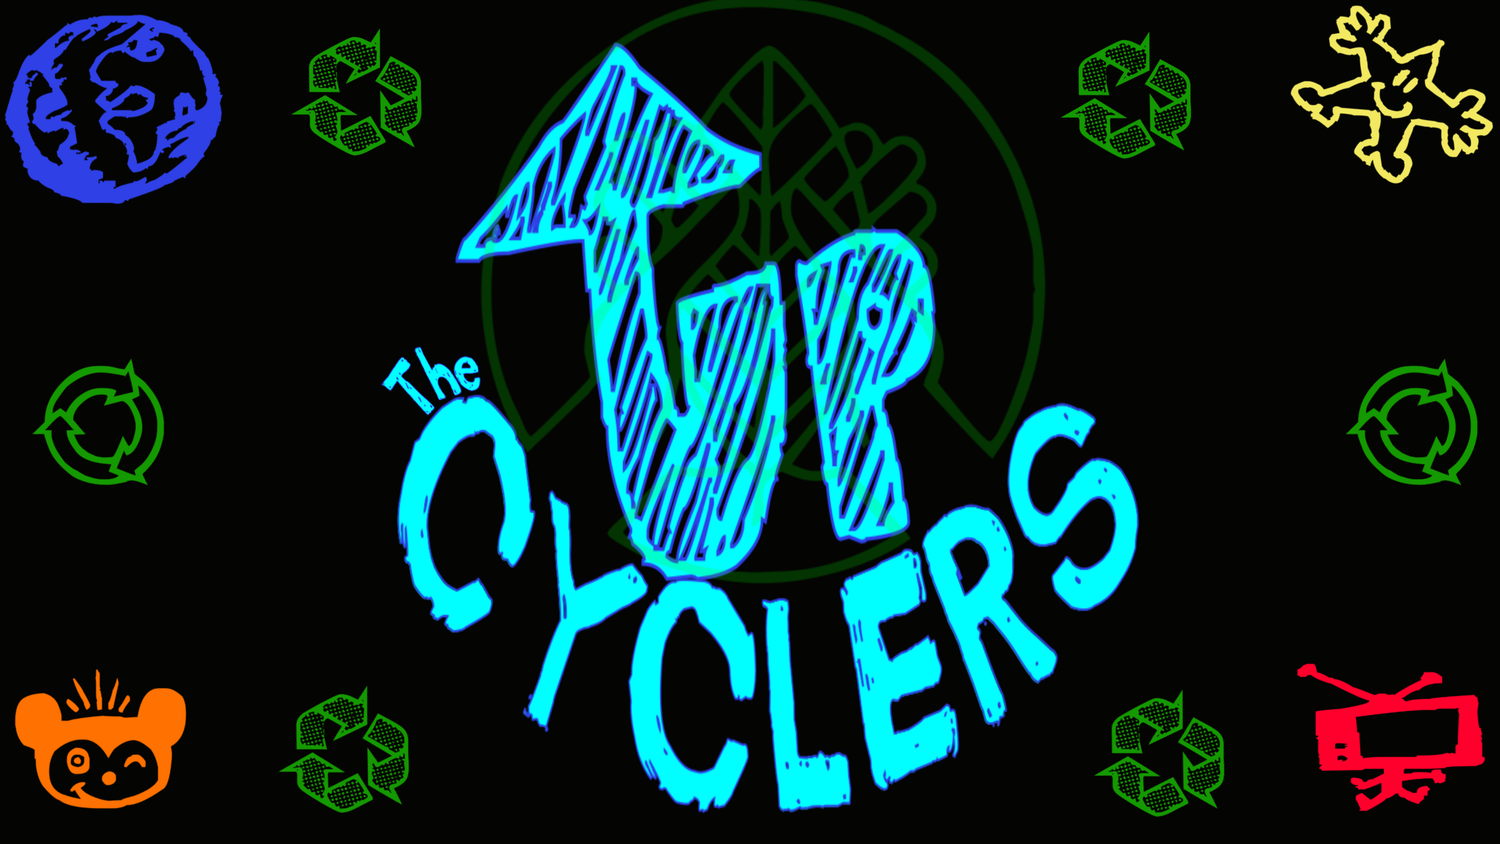 The Upcyclers